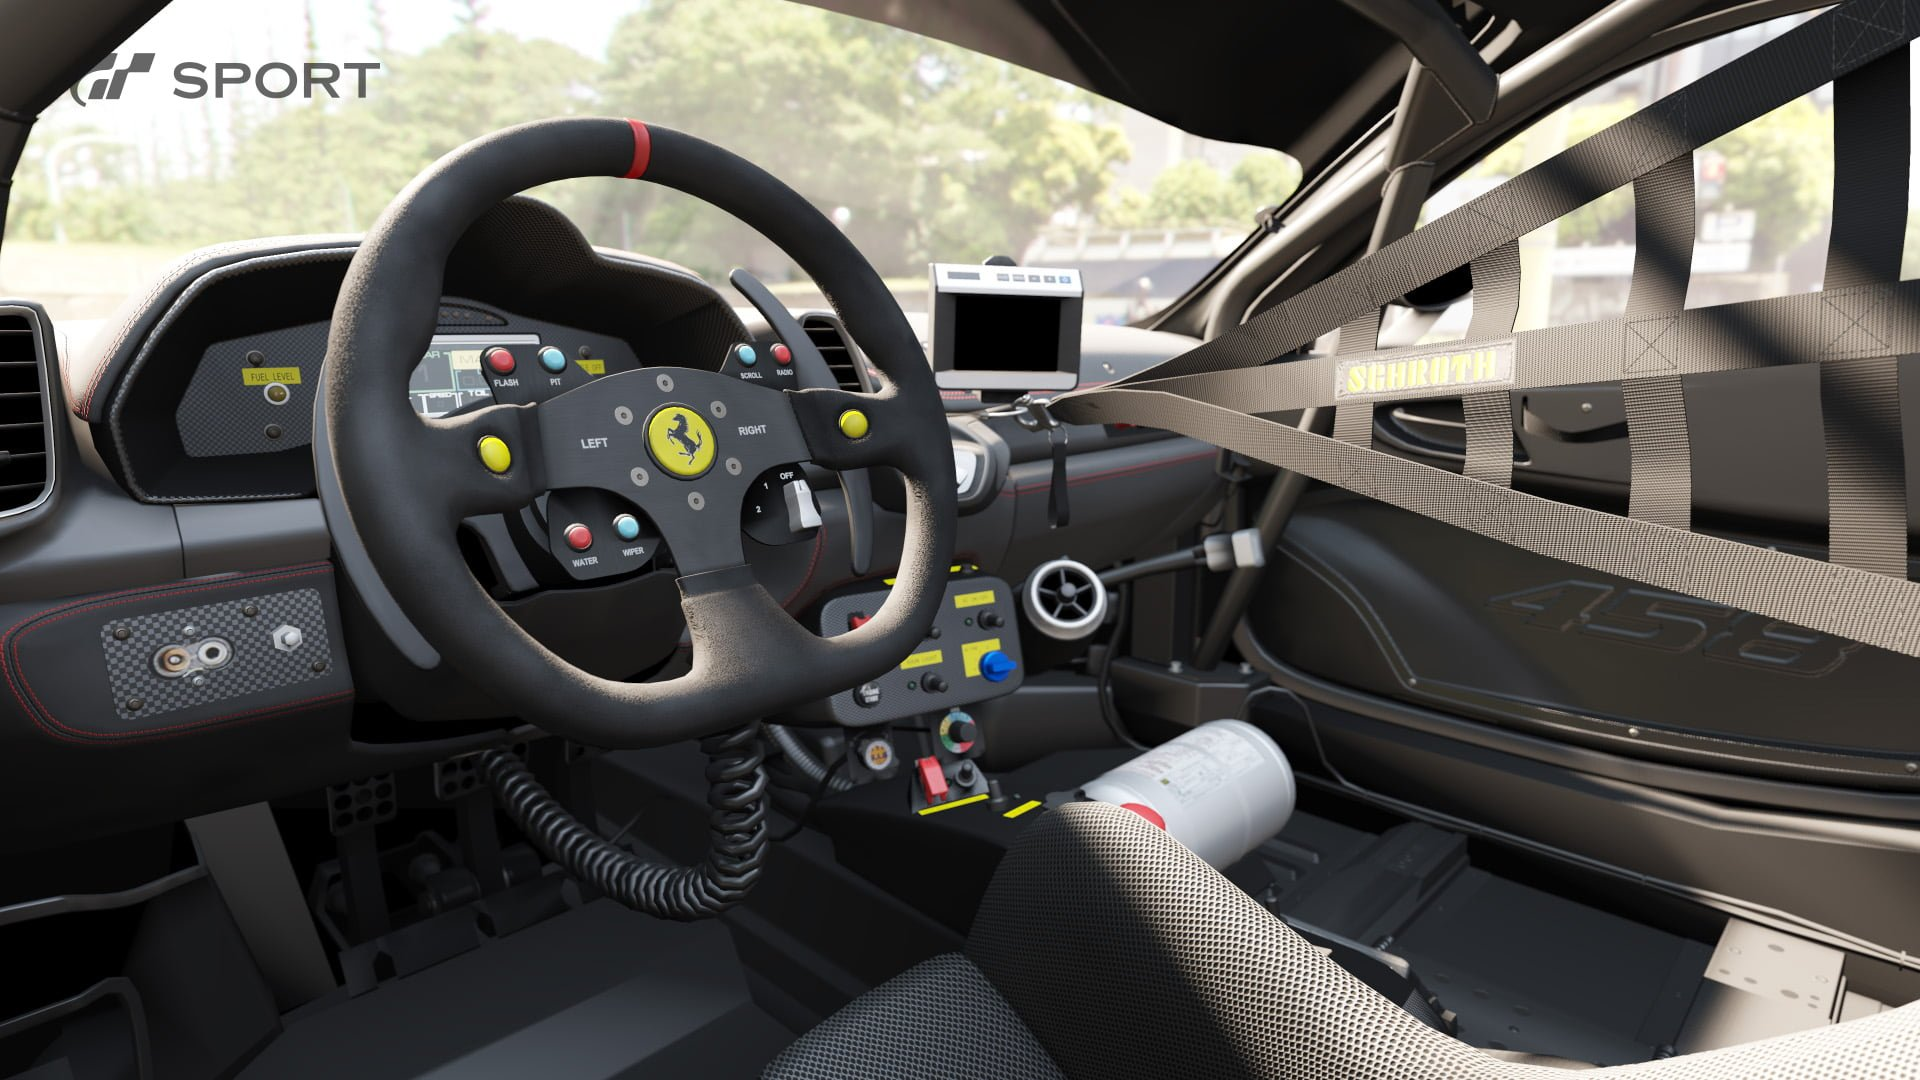 More Gameplay Footage Of Gran Turismo Sport Revealed At E3